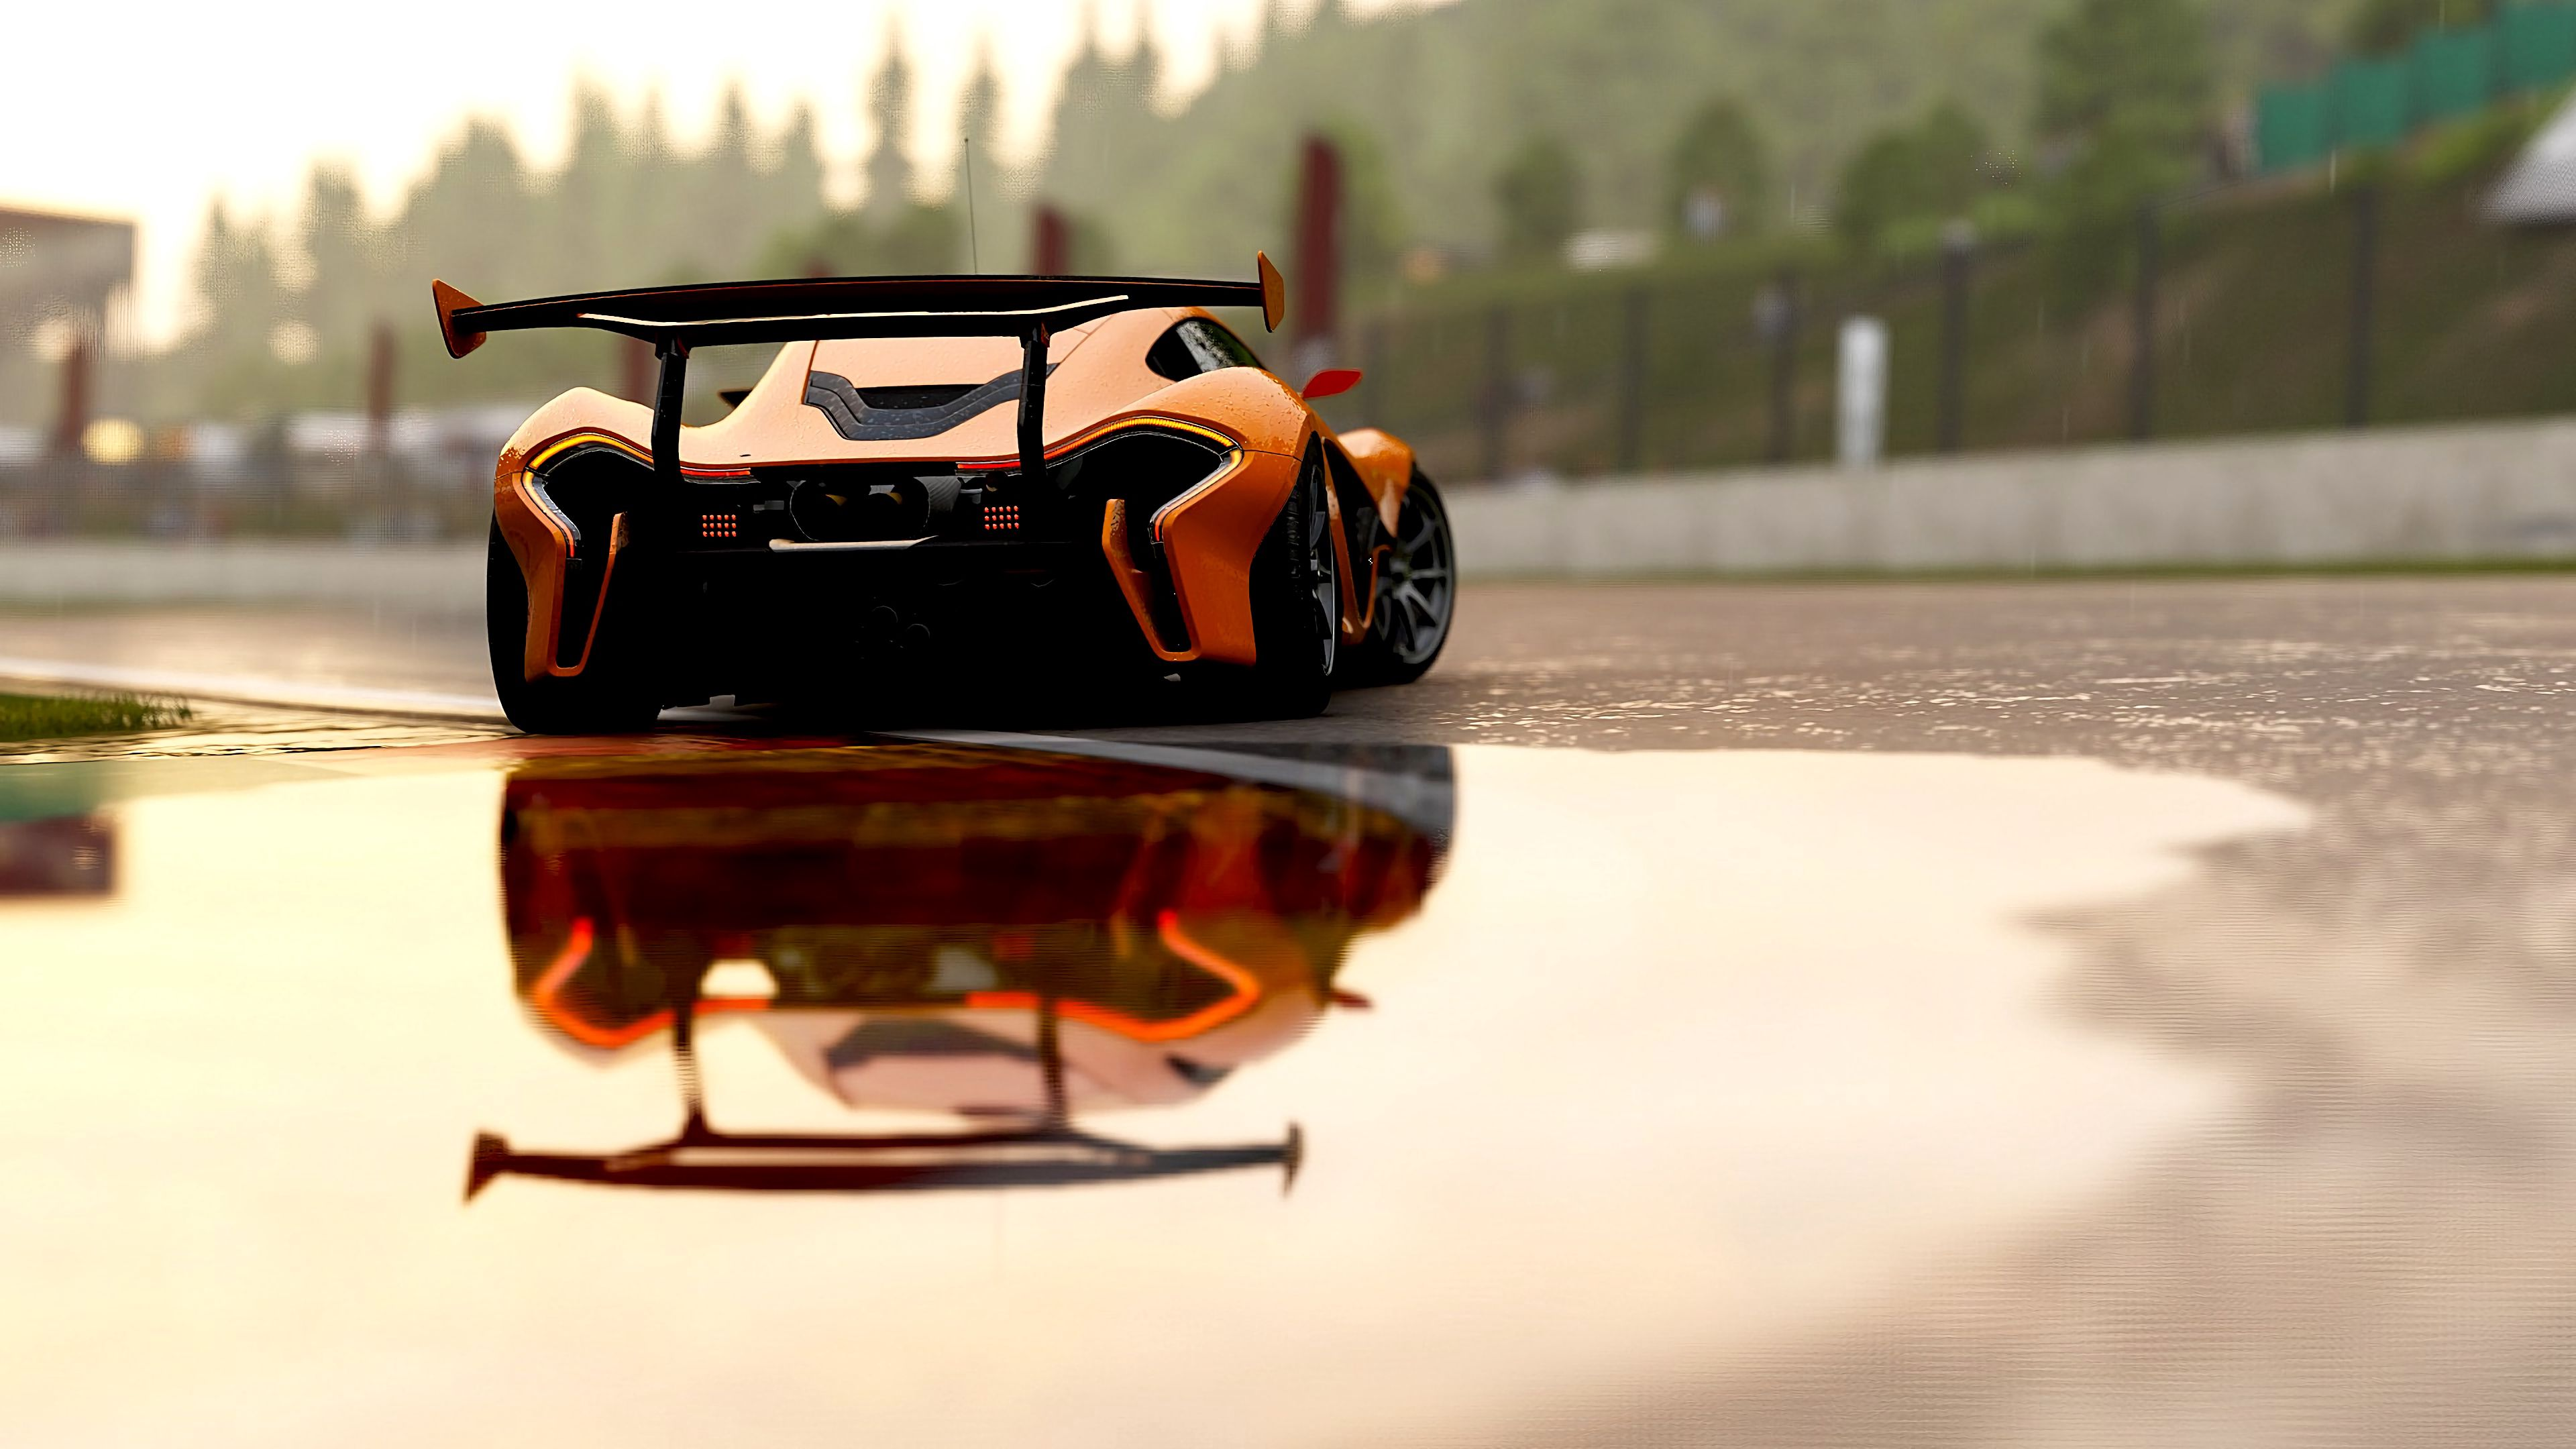 152584 download wallpaper Cars, Mclaren P1, Mclaren, Sports Car, Sports, Races, Back View, Rear View screensavers and pictures for free